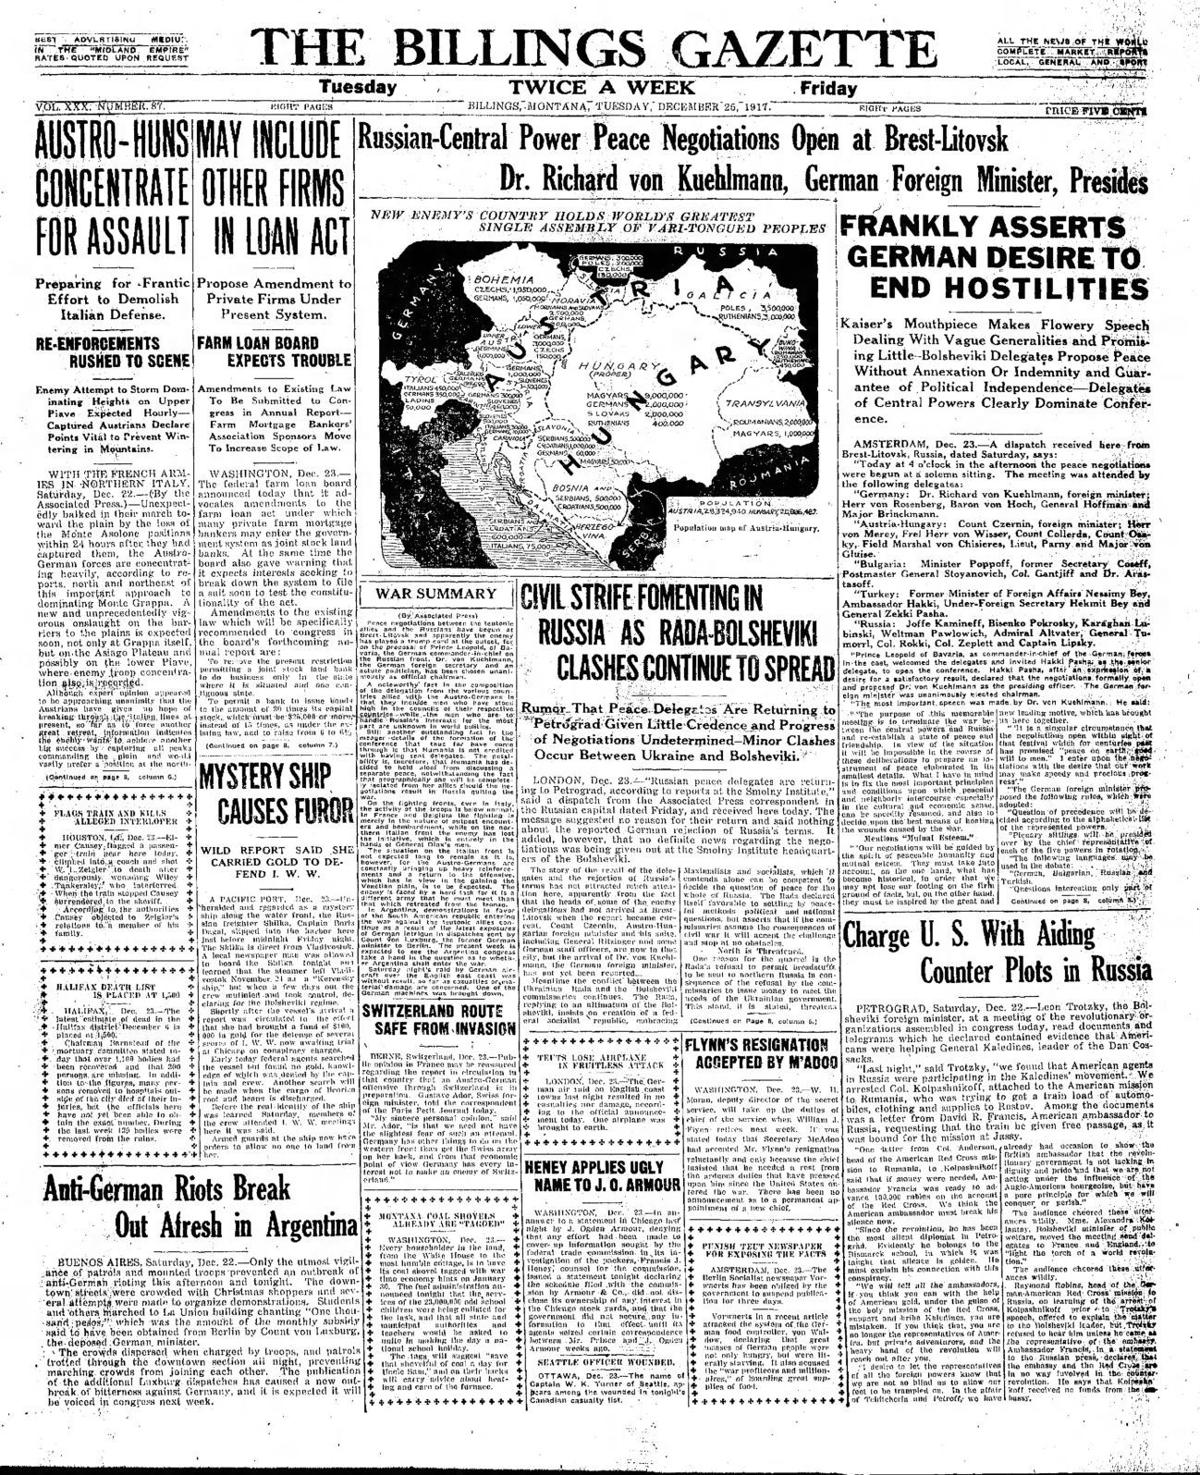 The front page of The Billings Gazette Dec. 25, 1917